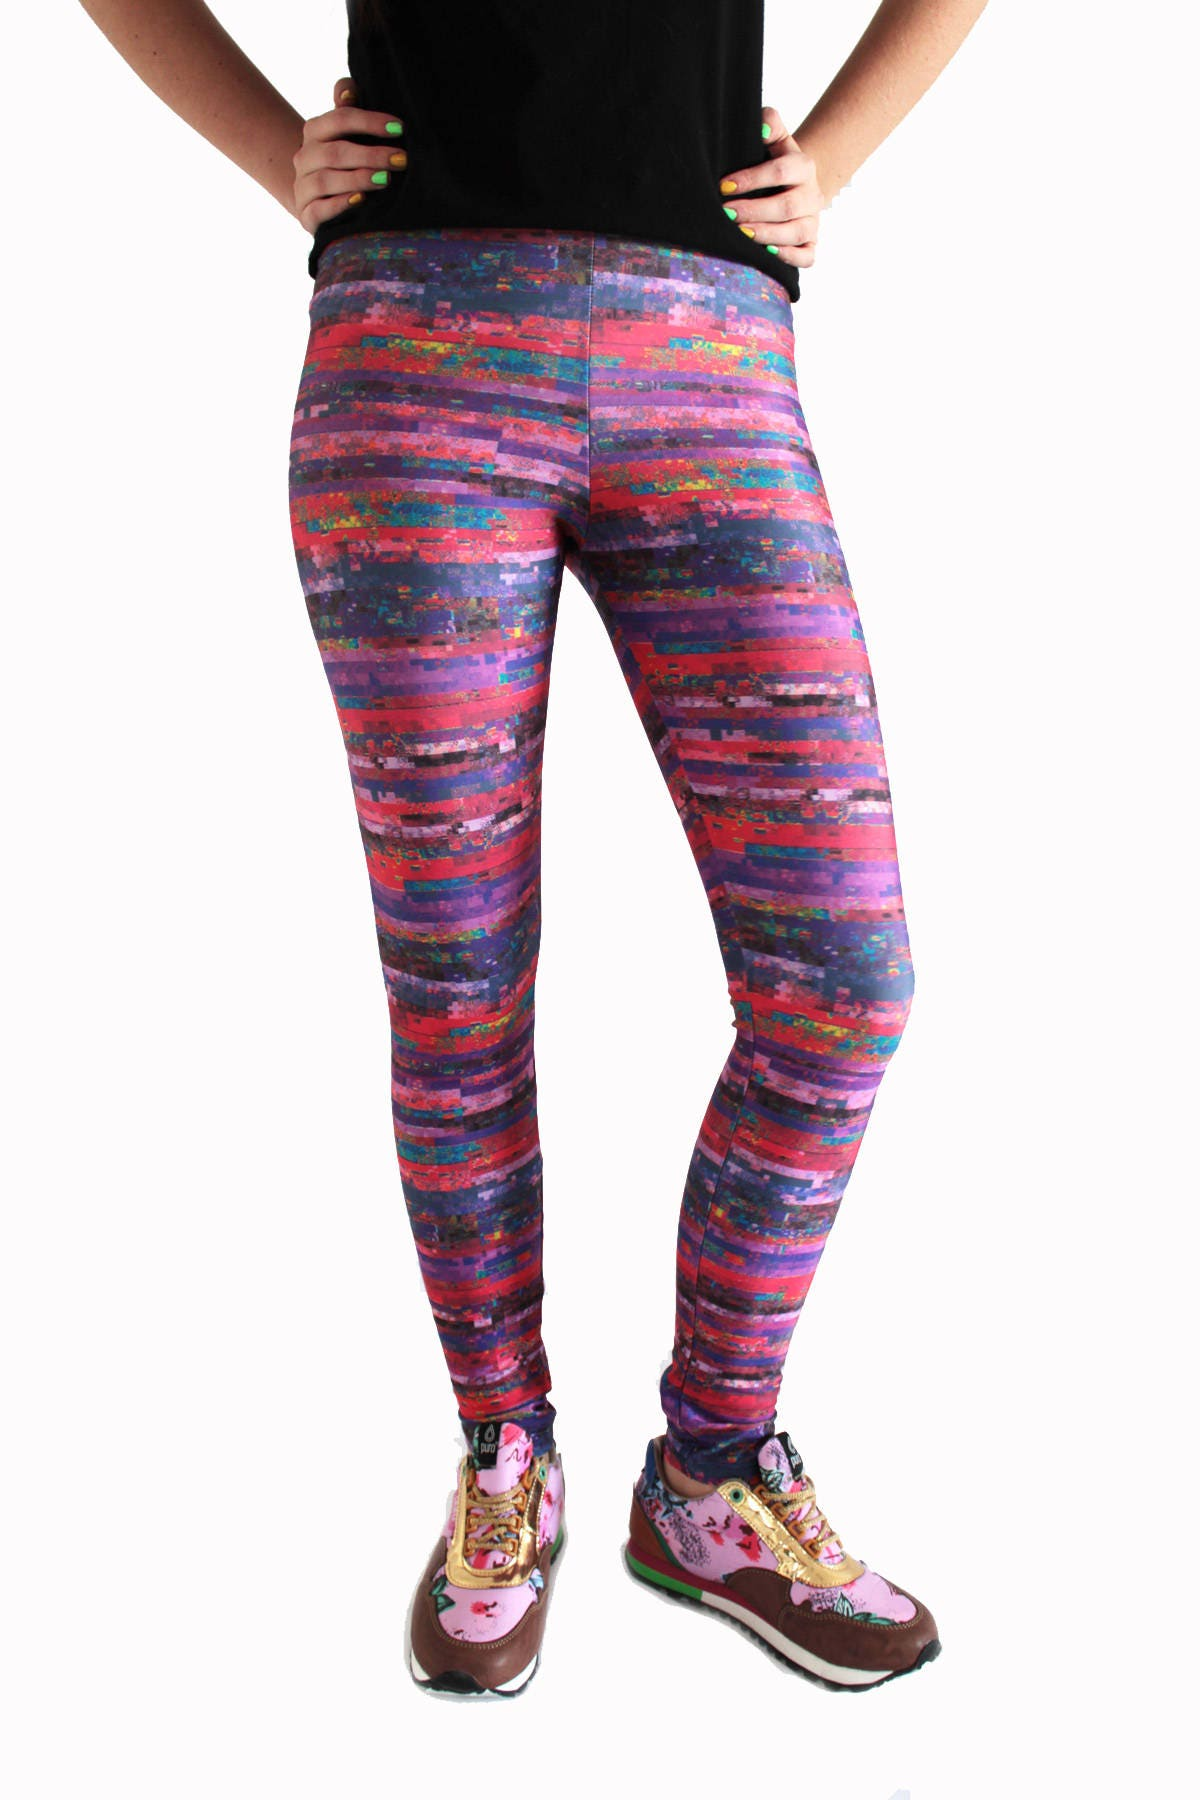 c4f09ee121042 Glitch Leggings Noise Texture Tights Funky Workout Pink | Etsy